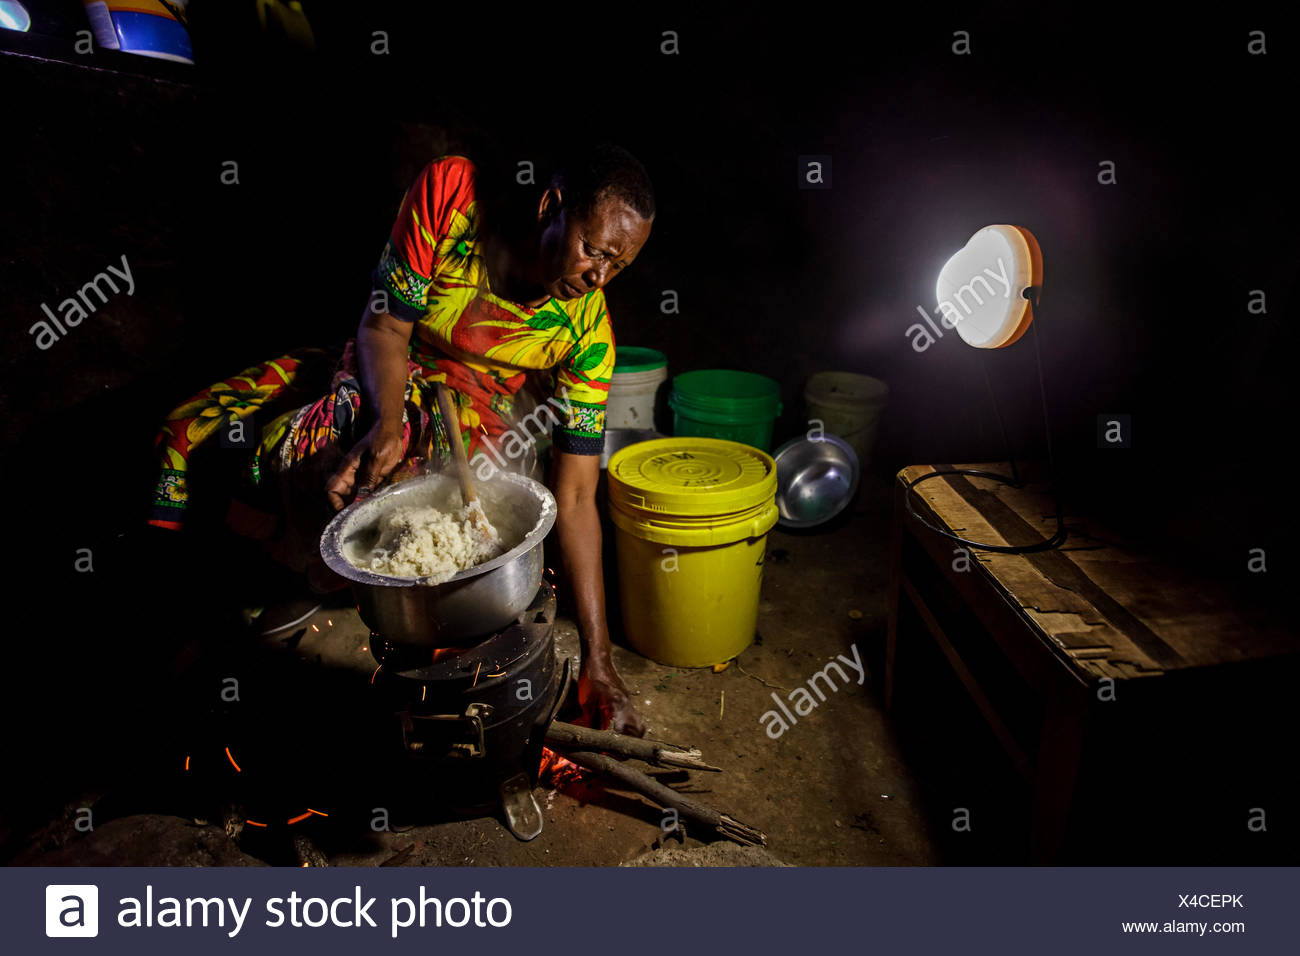 At her home near Arusha, Tanzania Solar Sister entrepreneur Julieth Mollel prepares a dinner of ugali, vegetables and beans cooking on her clean cookstove. Ugali is a staple eaten in many countries in Africa and is cornmeal porridge. Working in her compact outdoor kitchen at night is easier now both with the clean cookstove that puts out very little smoke and uses only a fraction of the firewood of a traditional three-stone cookstove but also with her Solar Sister solar lantern to light up the area brightly while she works. - Stock Image